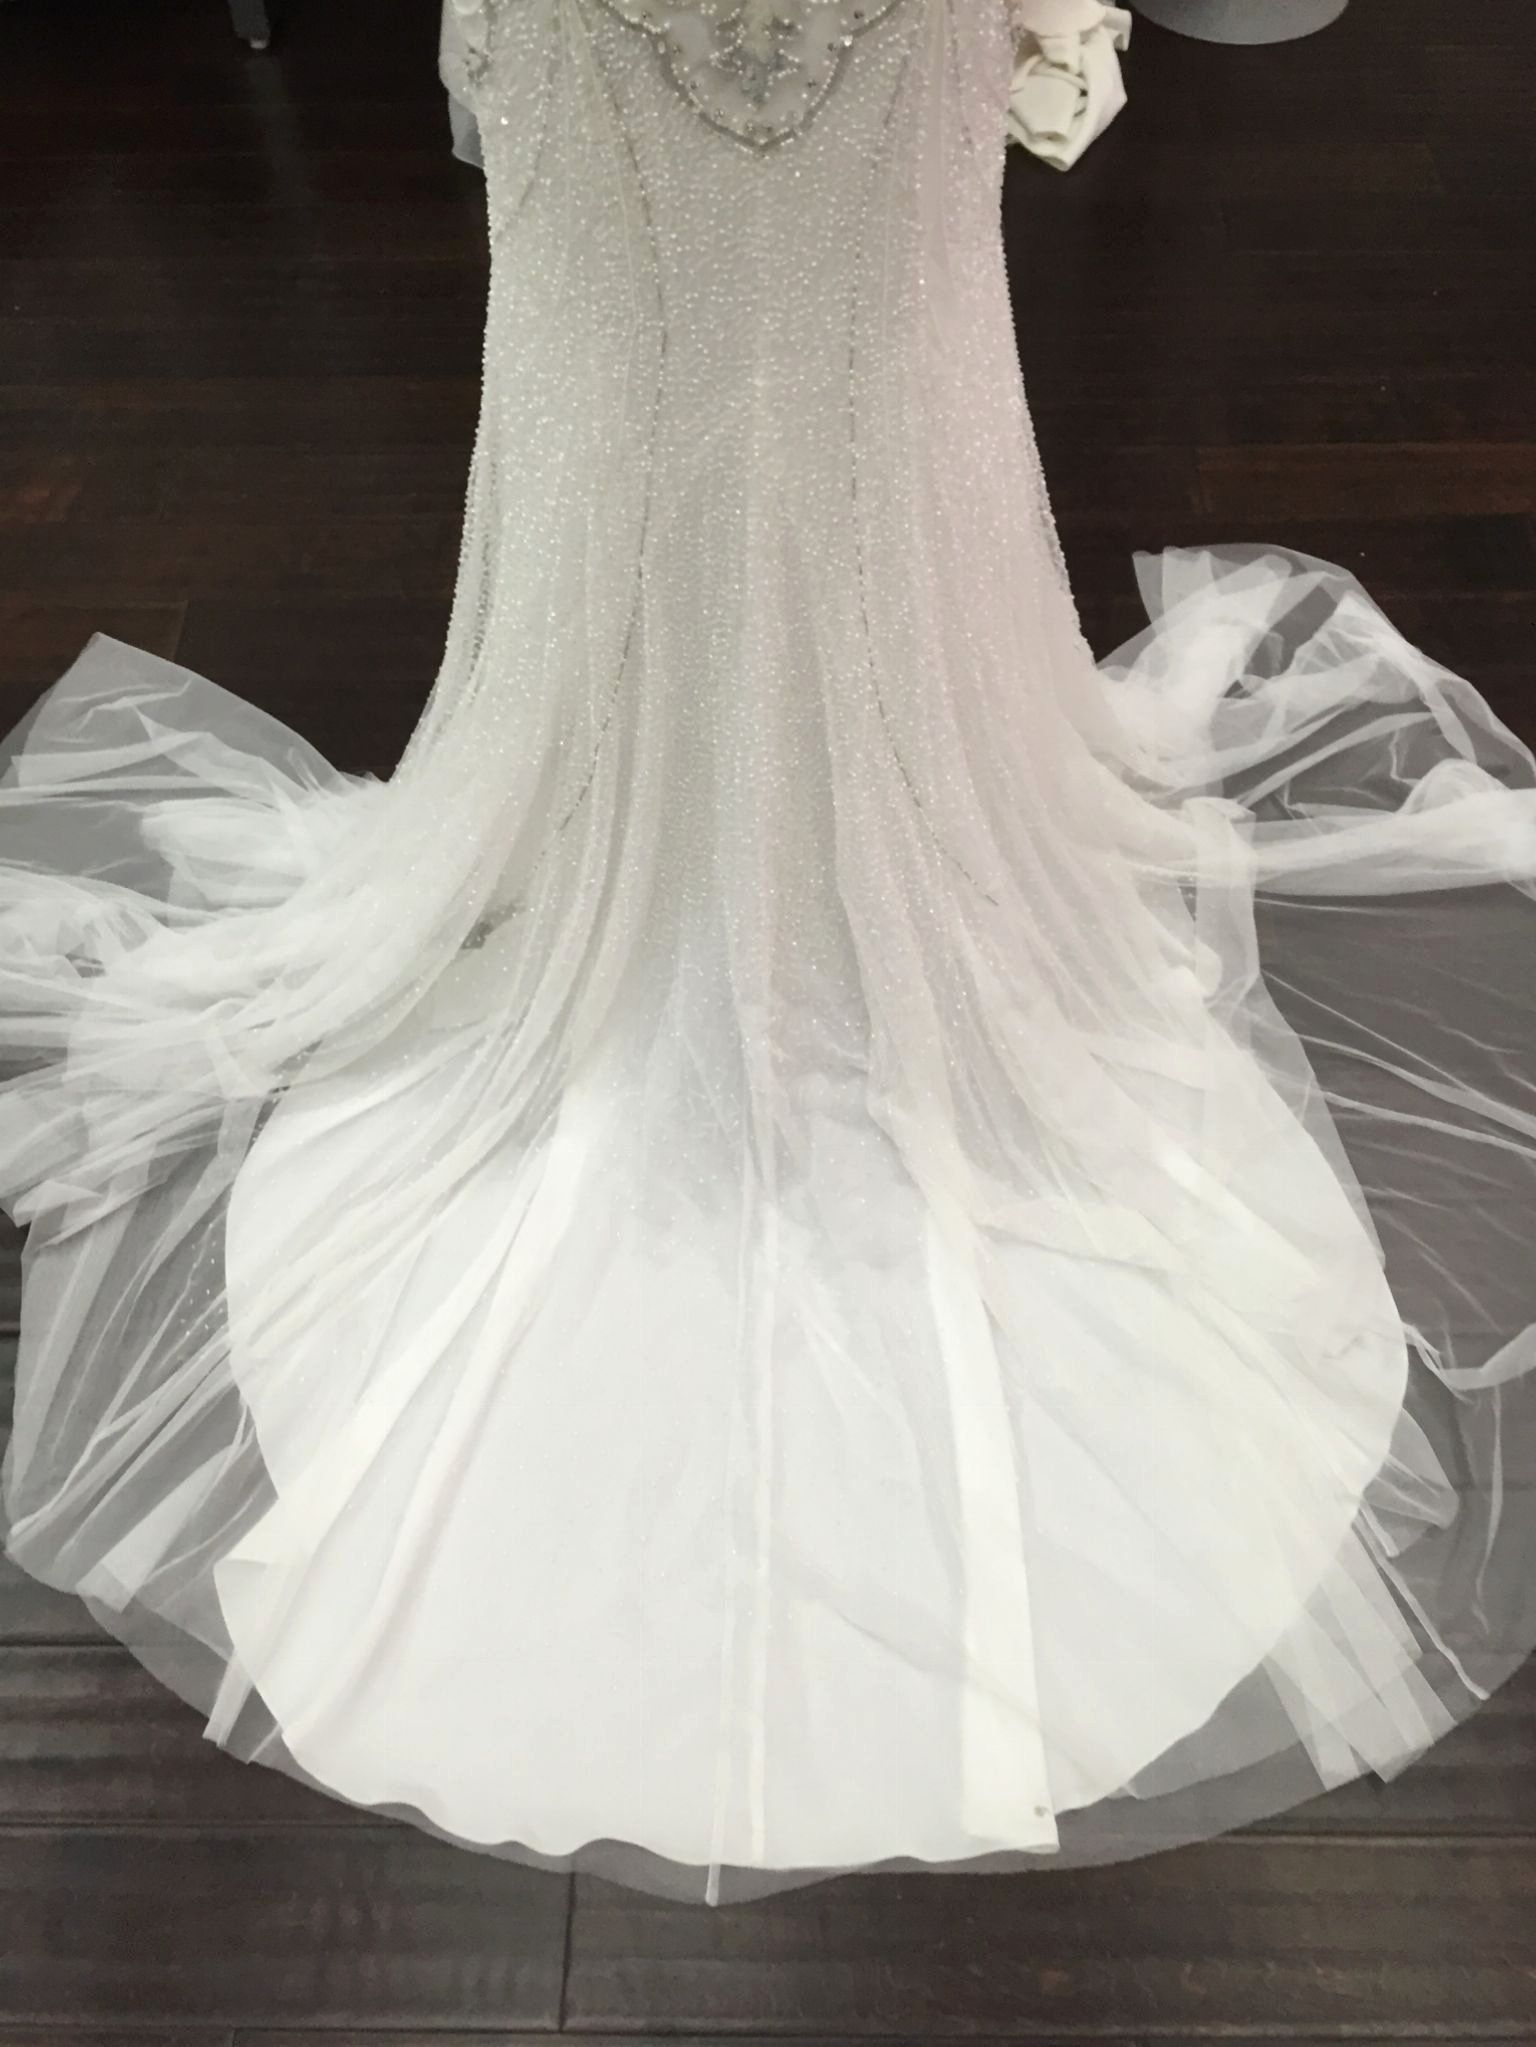 Wedding Dress In Vegas Luxury Rosa Clara Vega 500 Size 10 In 2020 Vegas Wedding Dress Dresses Wedding Dresses